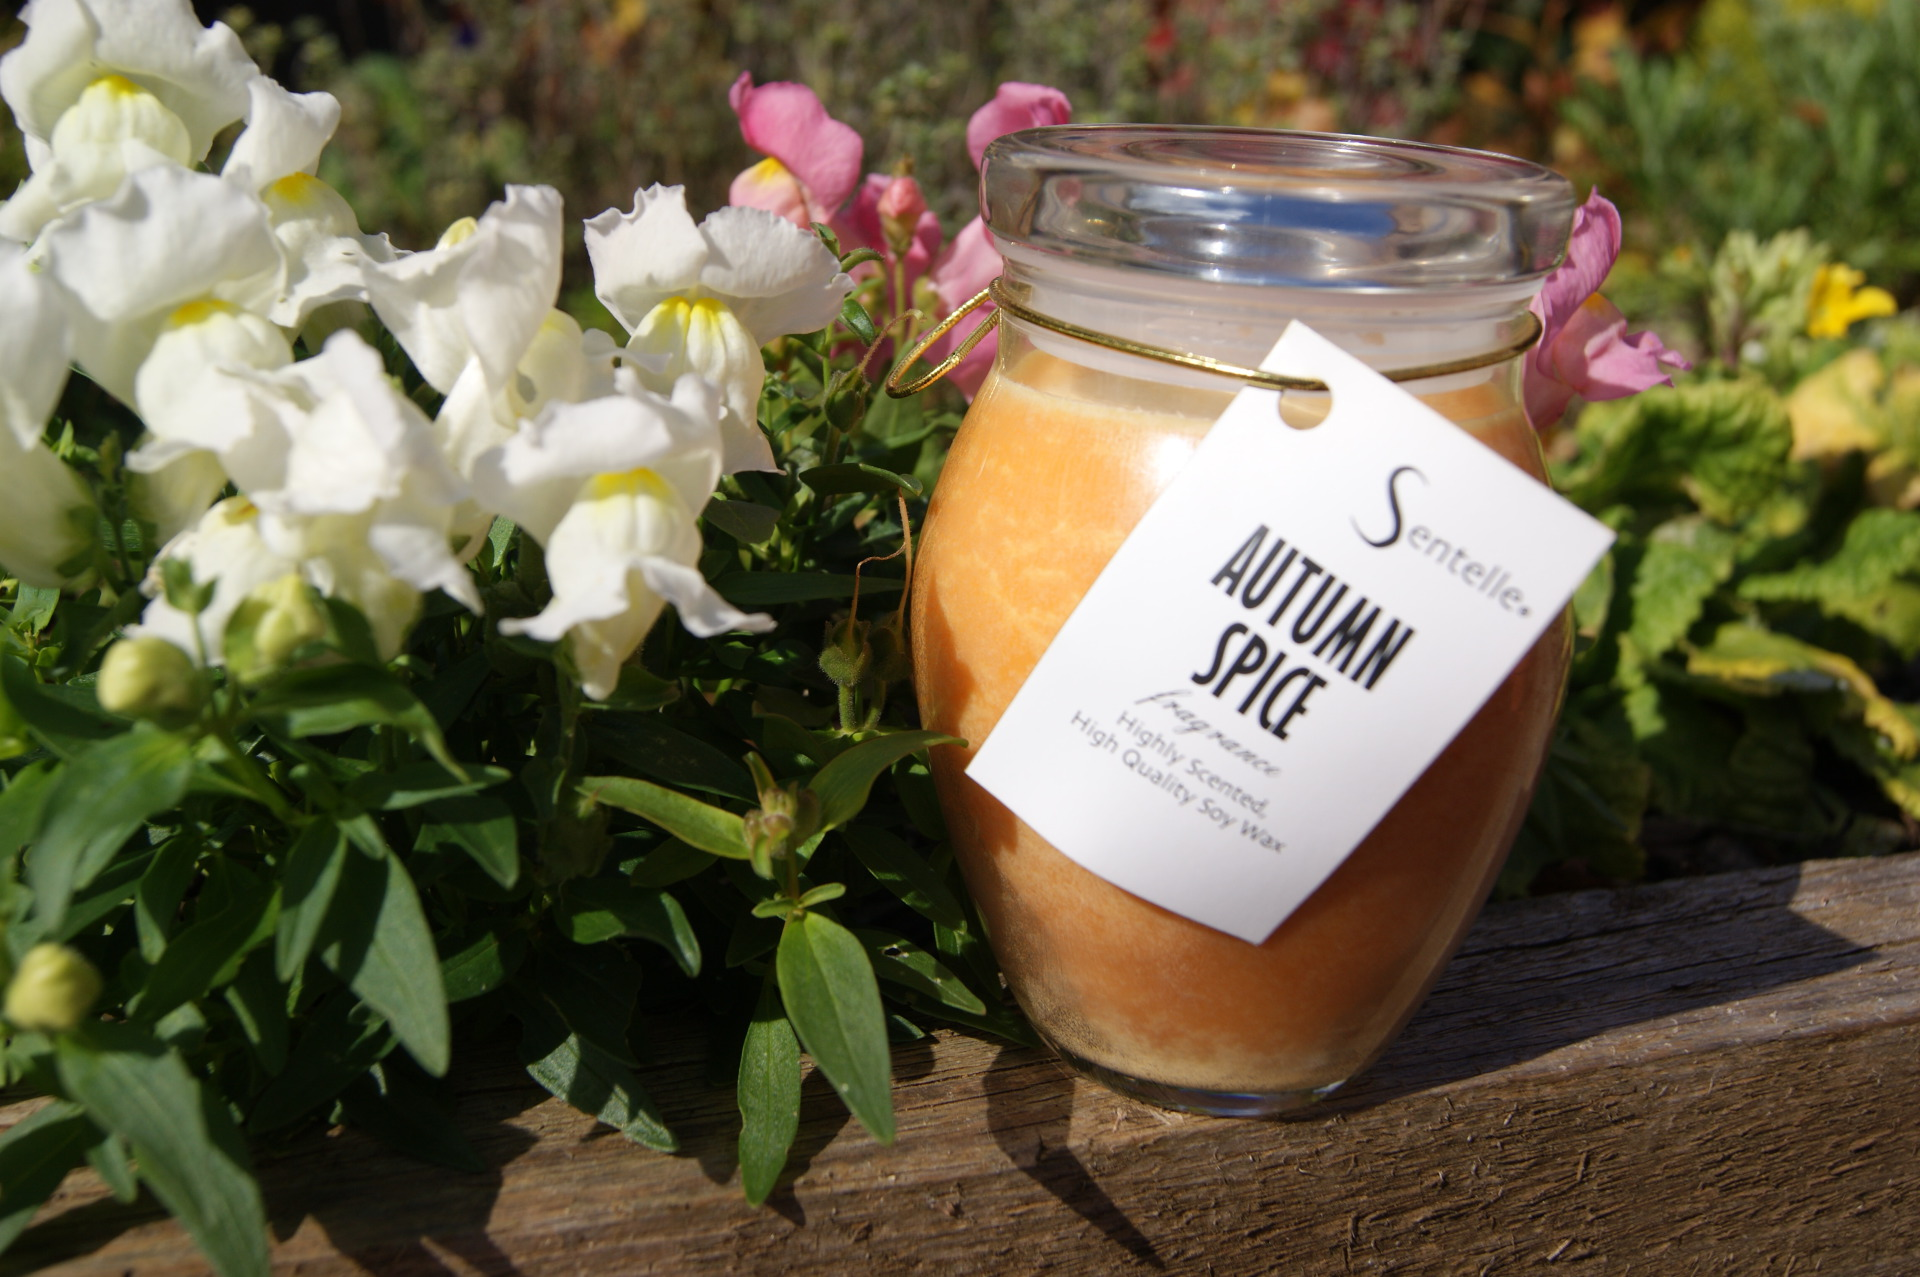 Sentelle - Autumn Spice Soy Wax Candle